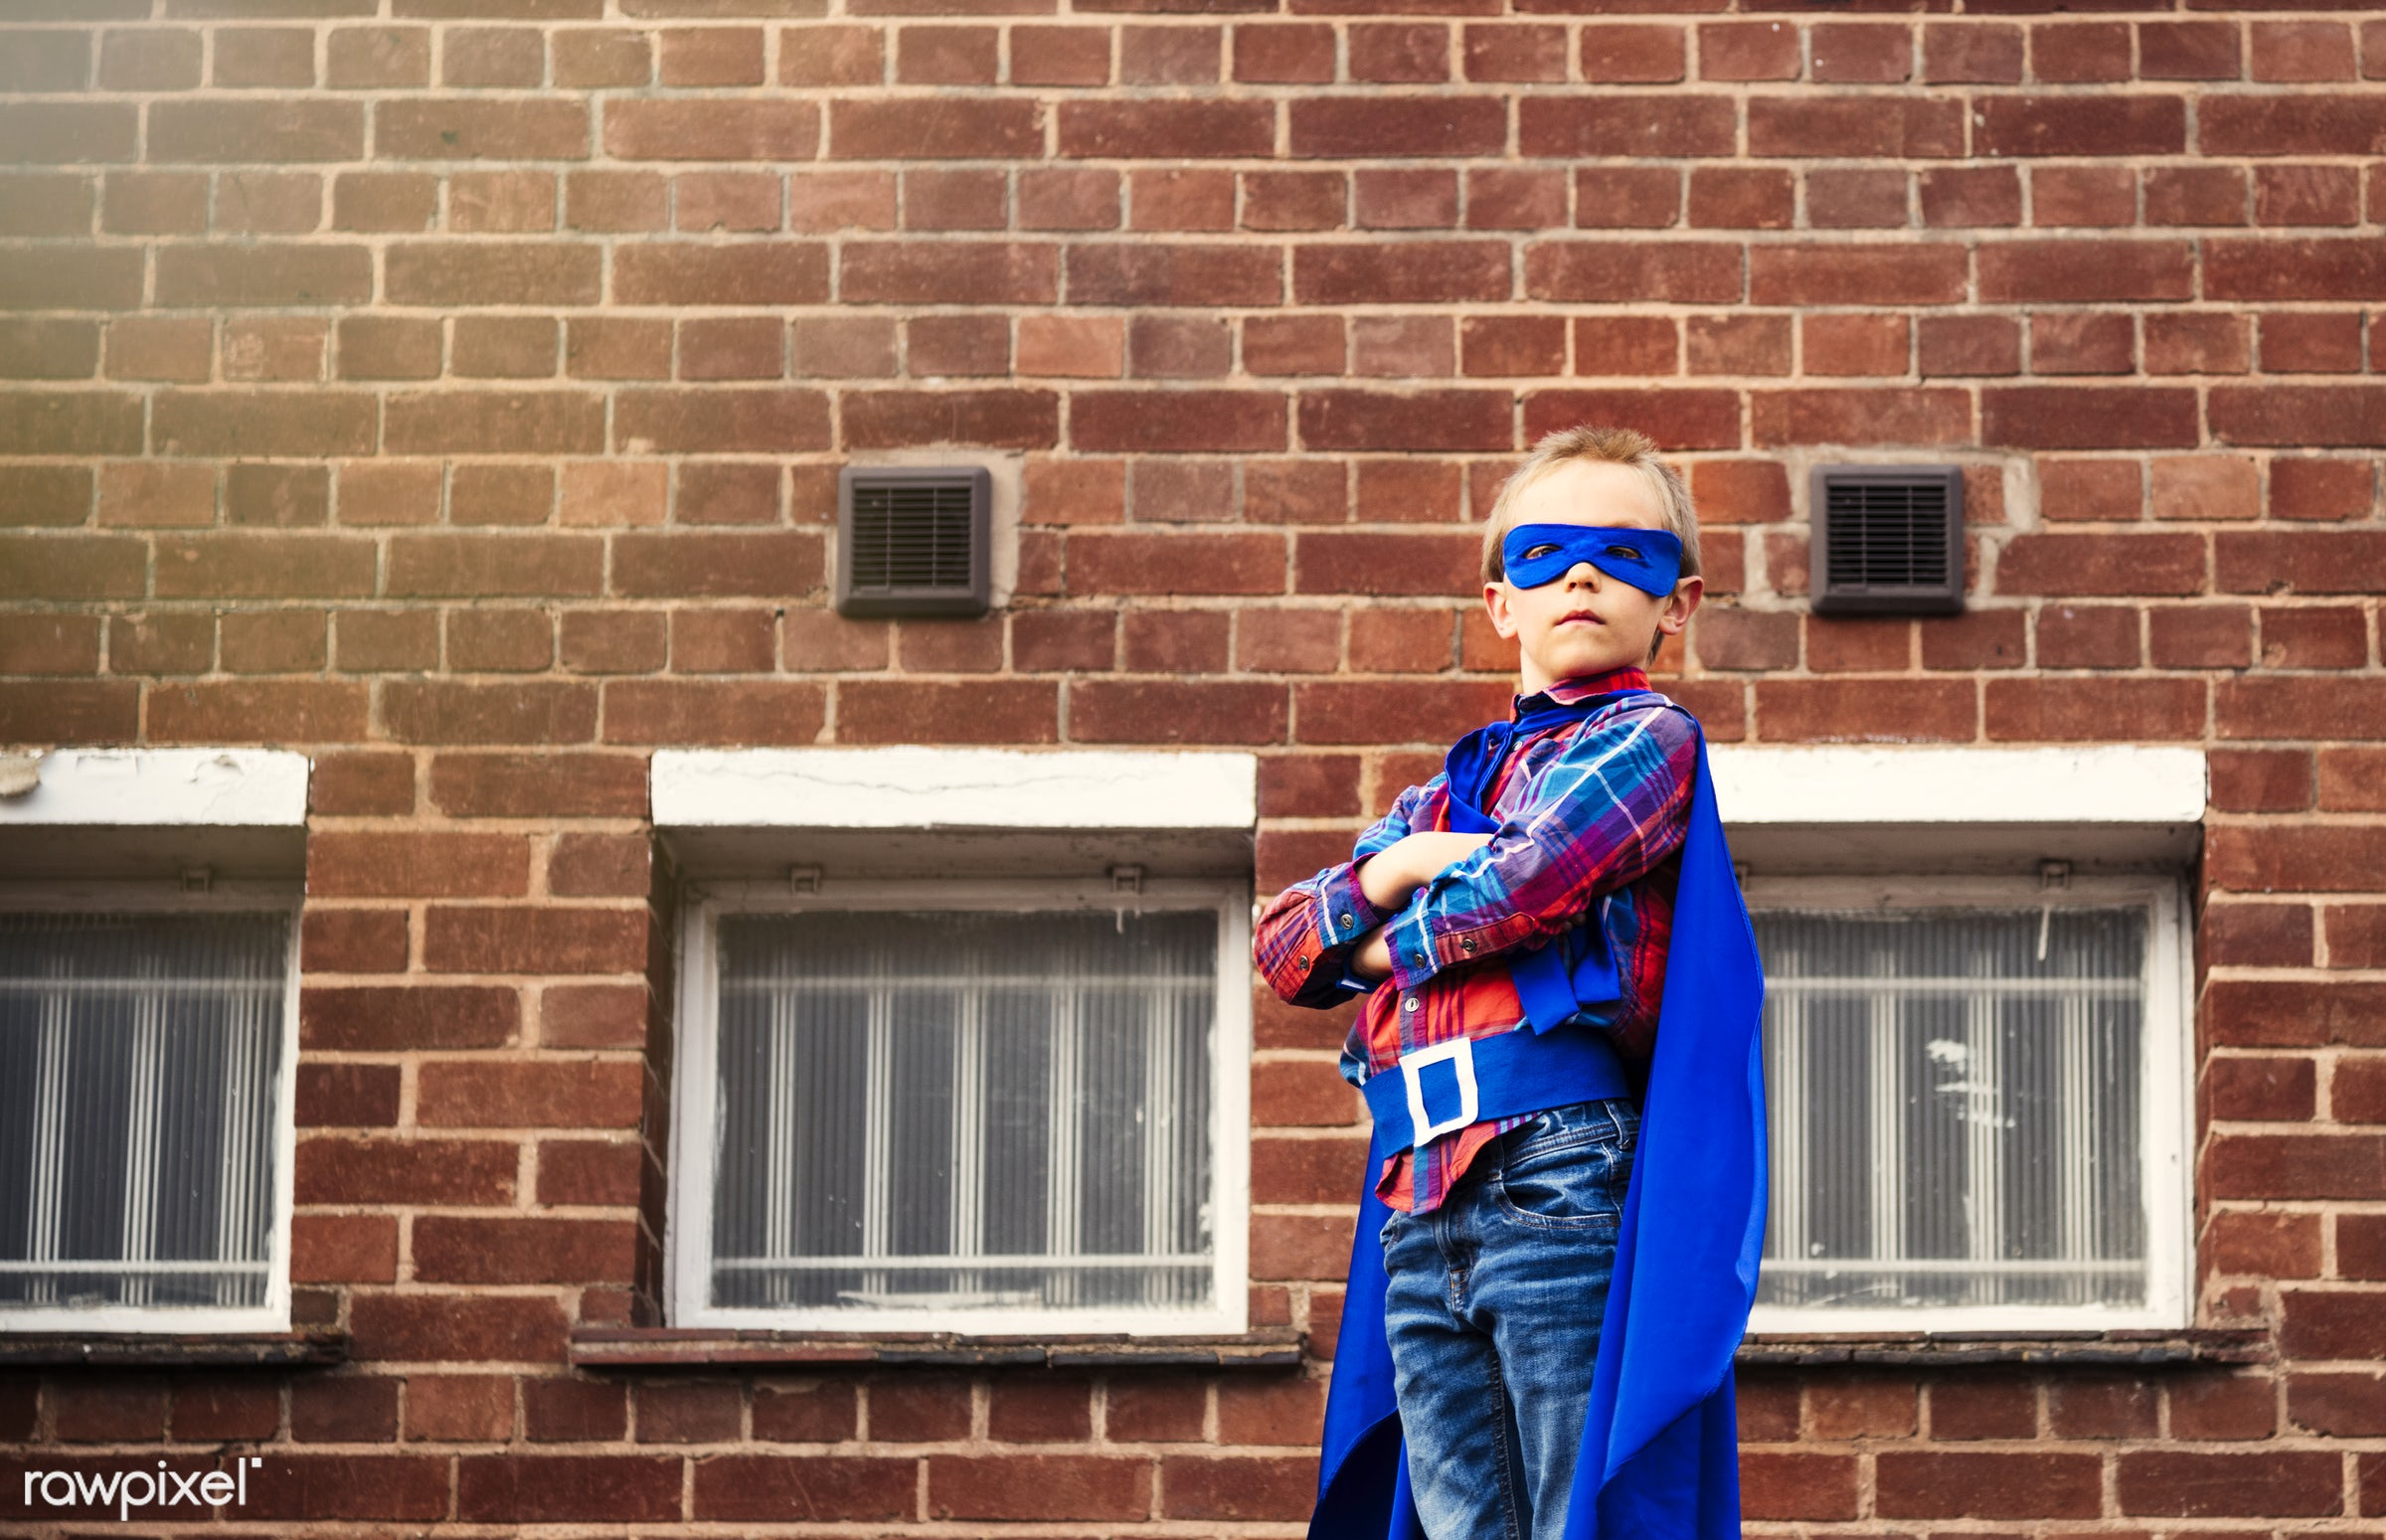 active, activity, adorable, aspirations, boy, brave, cape, cheerful, child, childhood, children, confidence, costume, cute,...